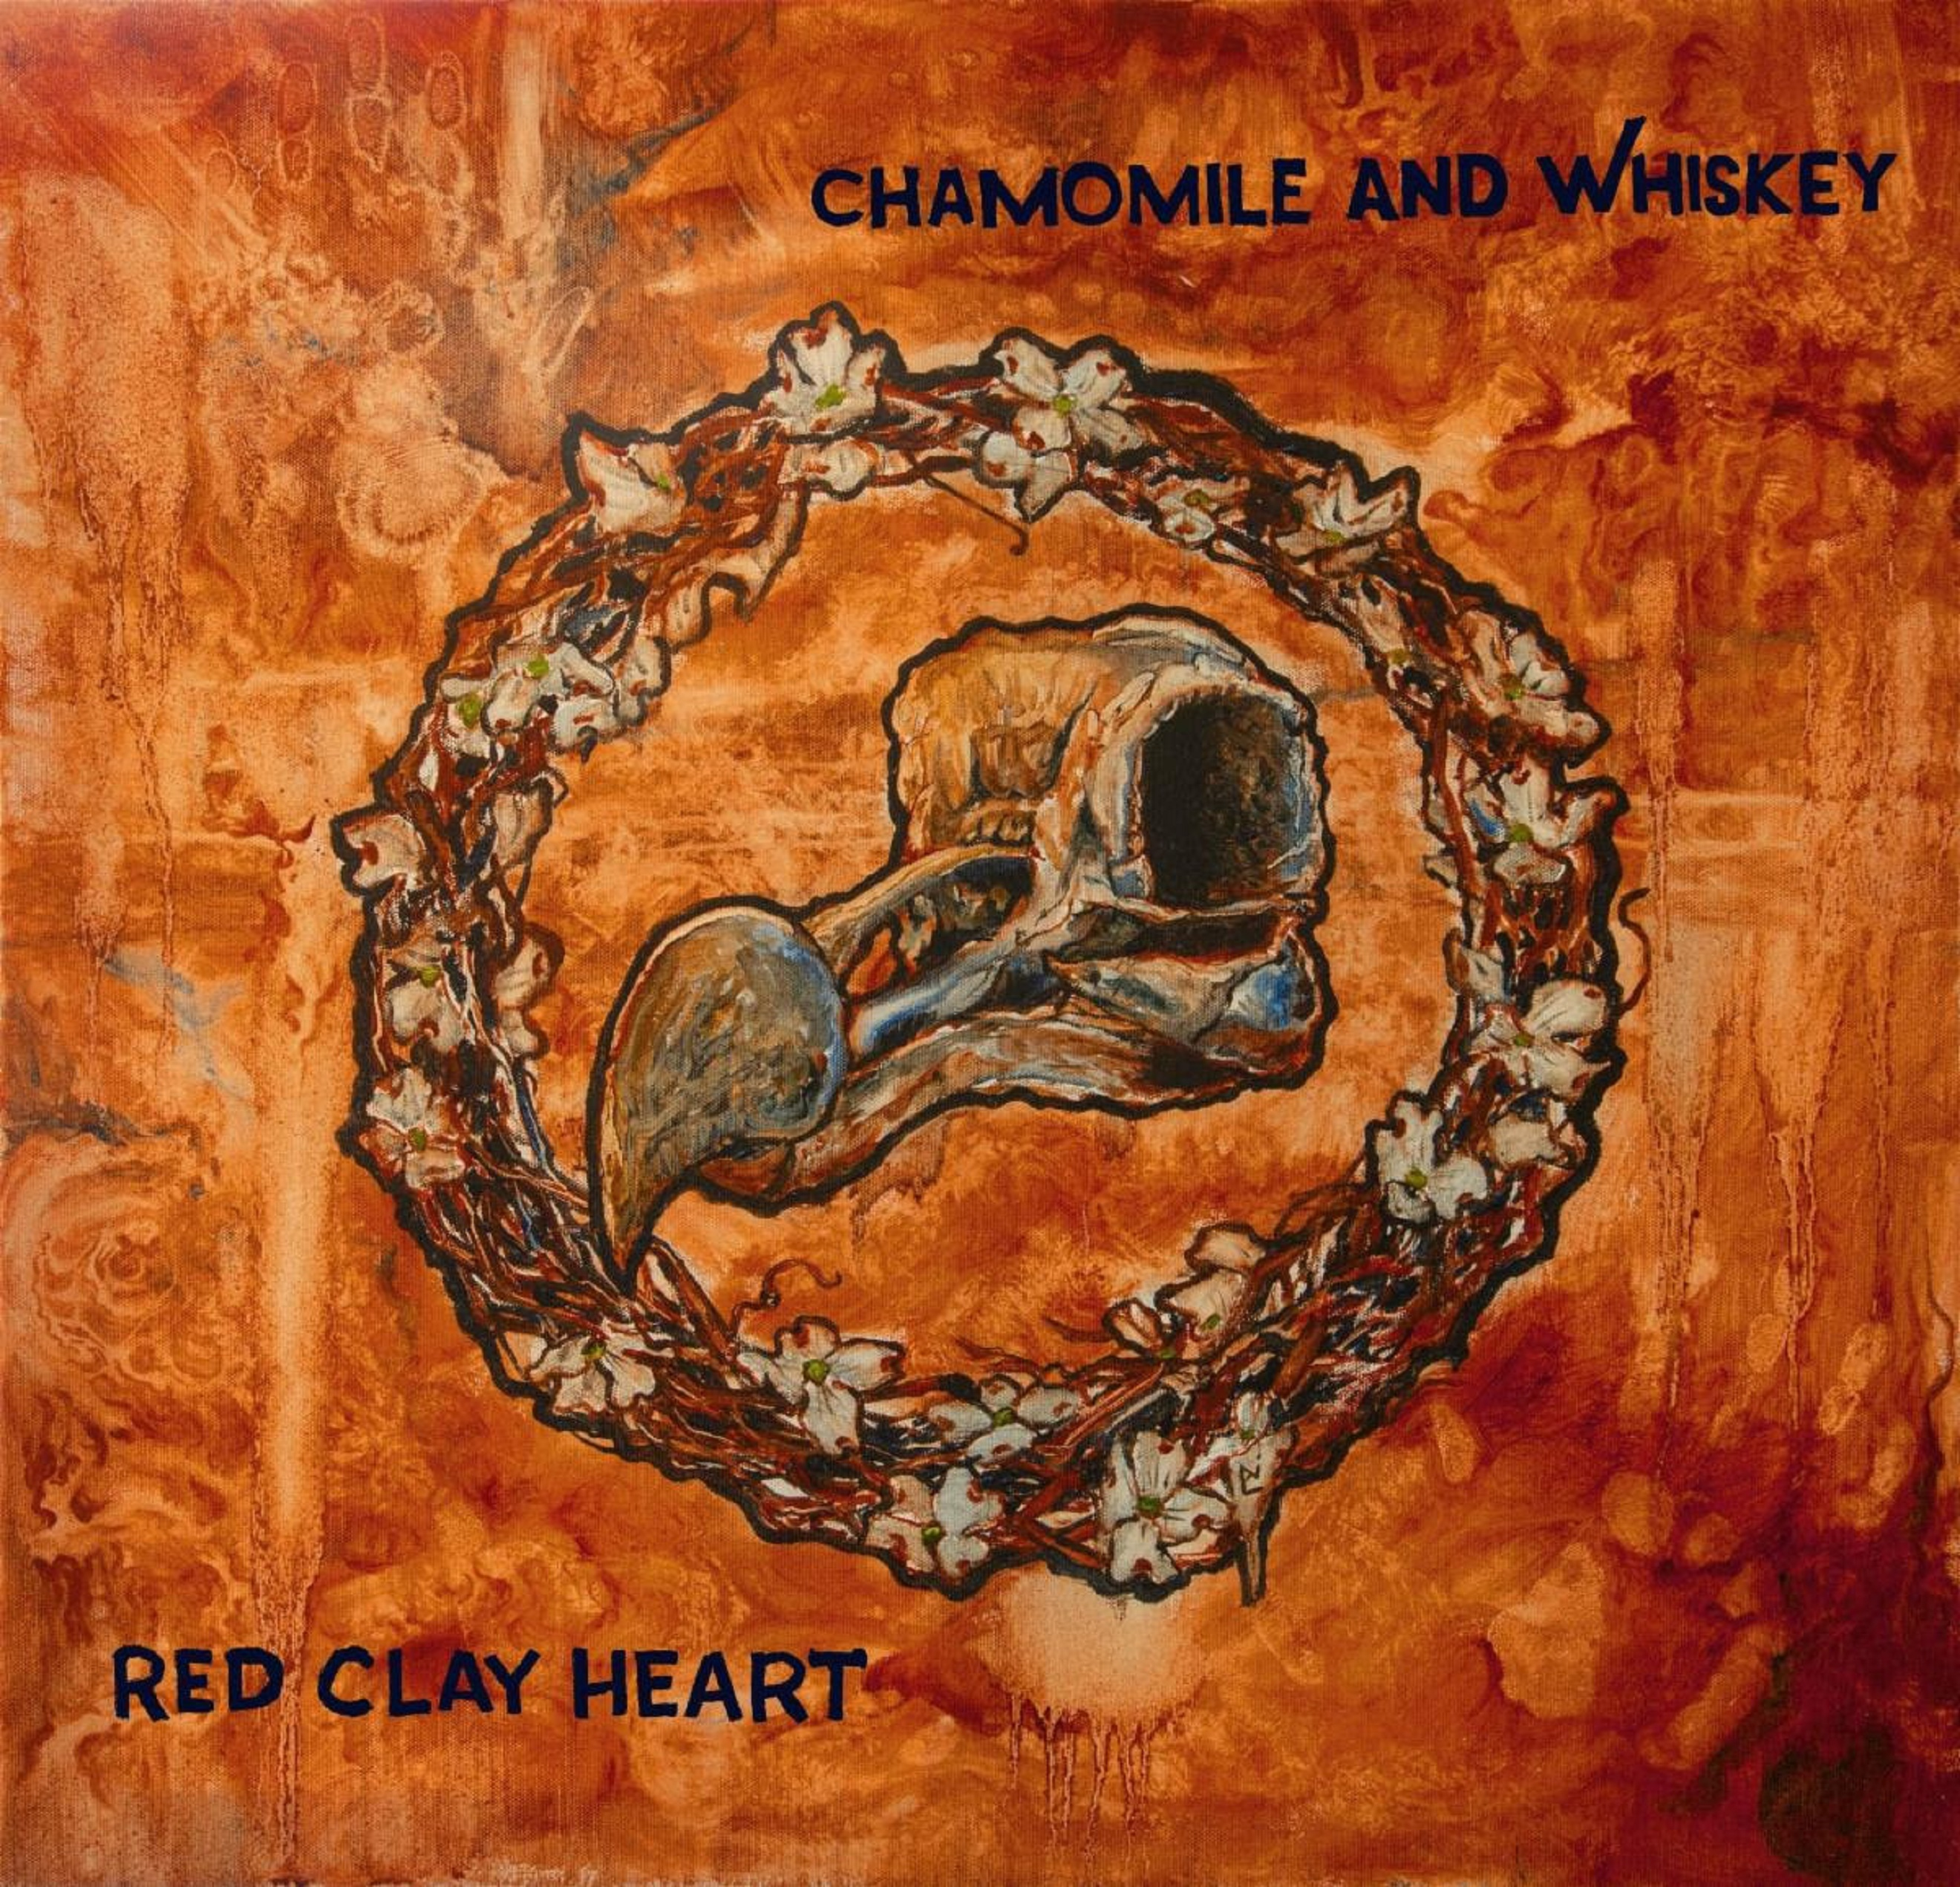 Chamomile and Whiskey Announce New Album Red Clay Heart Out October 30th